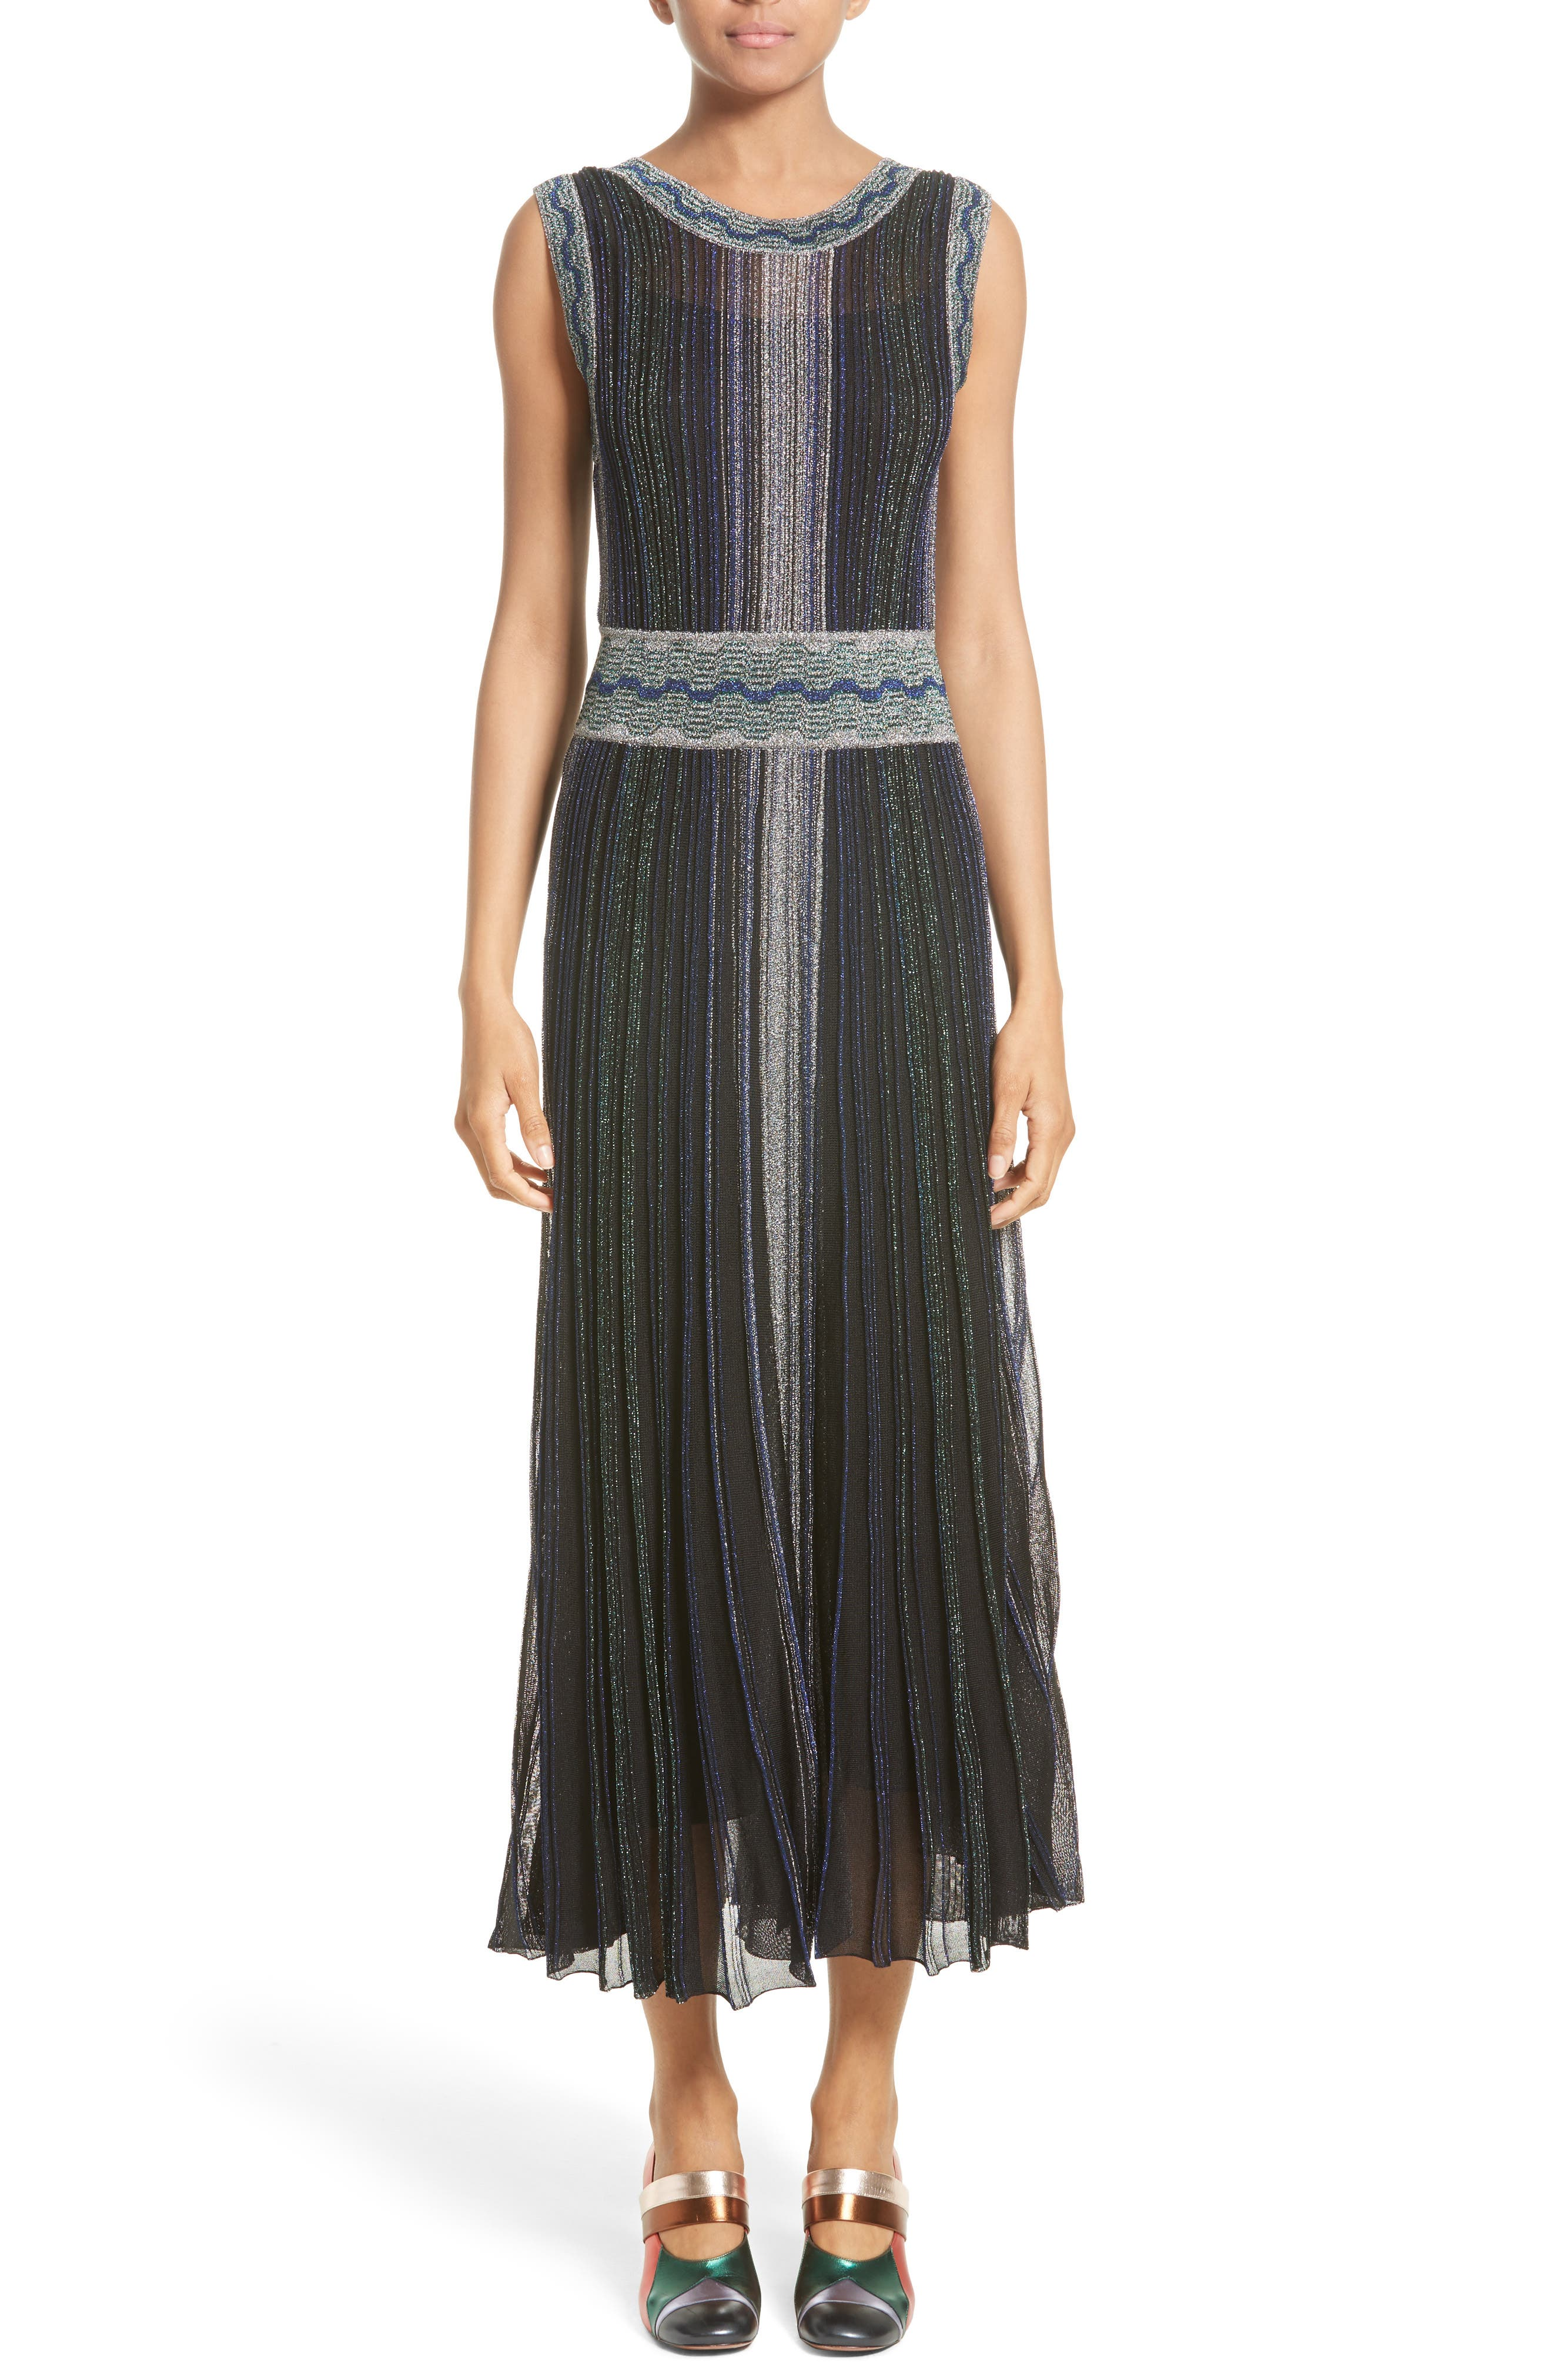 Missoni Reversible Metallic Rib Knit Dress